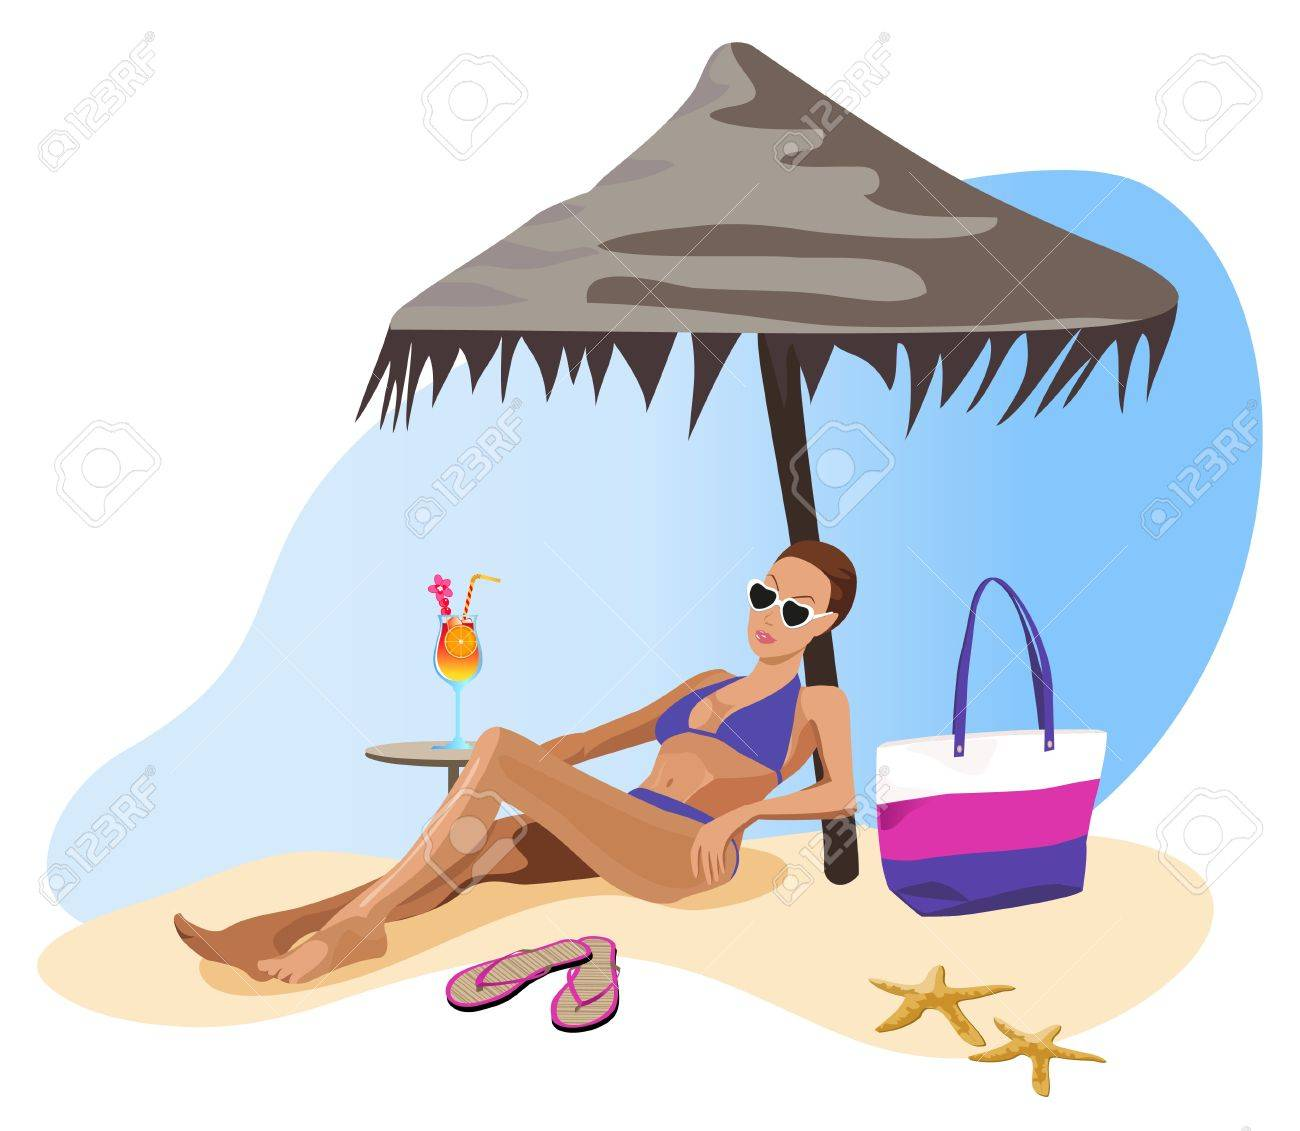 illustration of a woman chilling out on the beach royalty free rh 123rf com